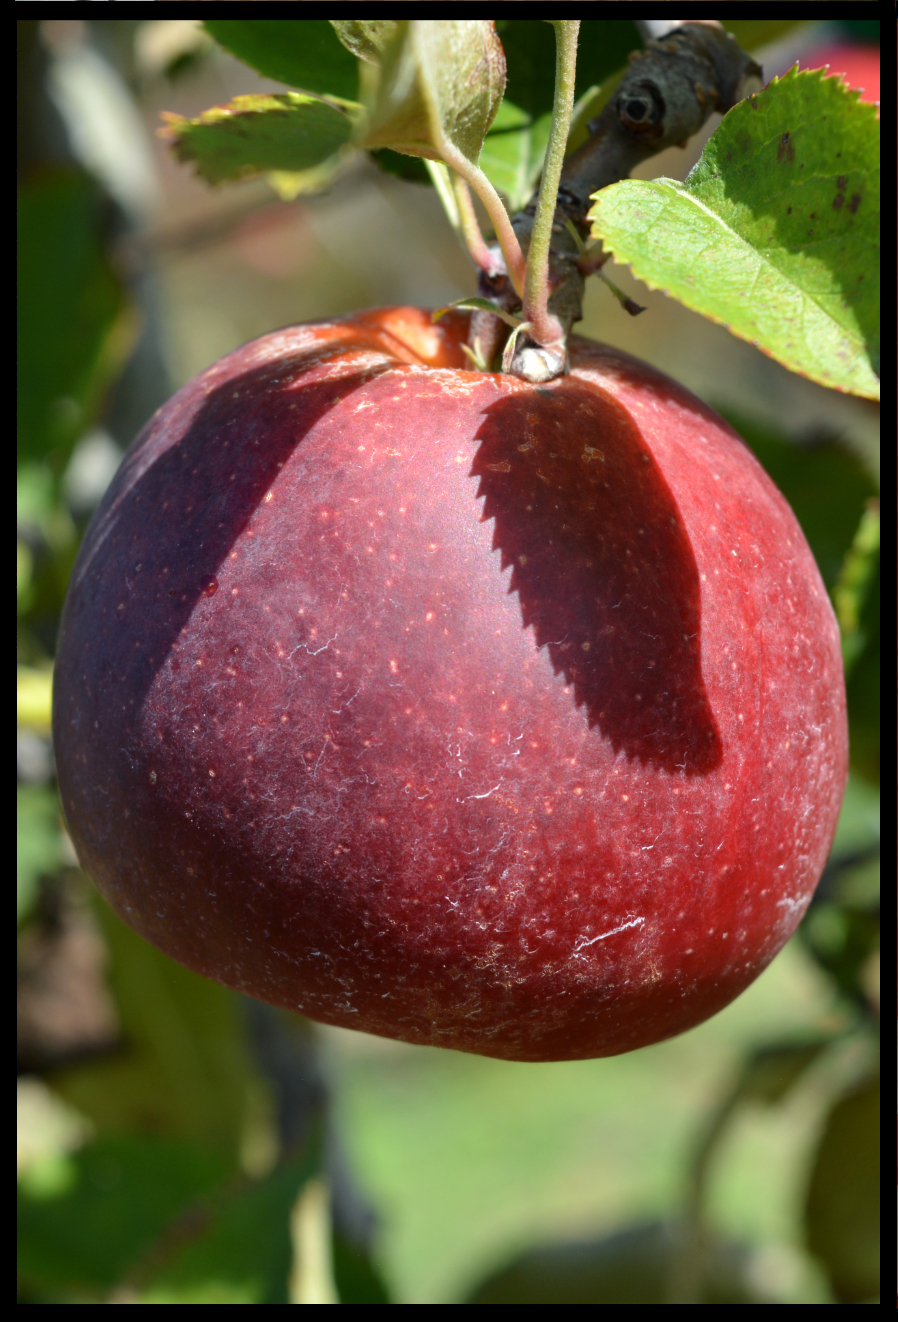 dark red apple that is wider at the bottom than at the top